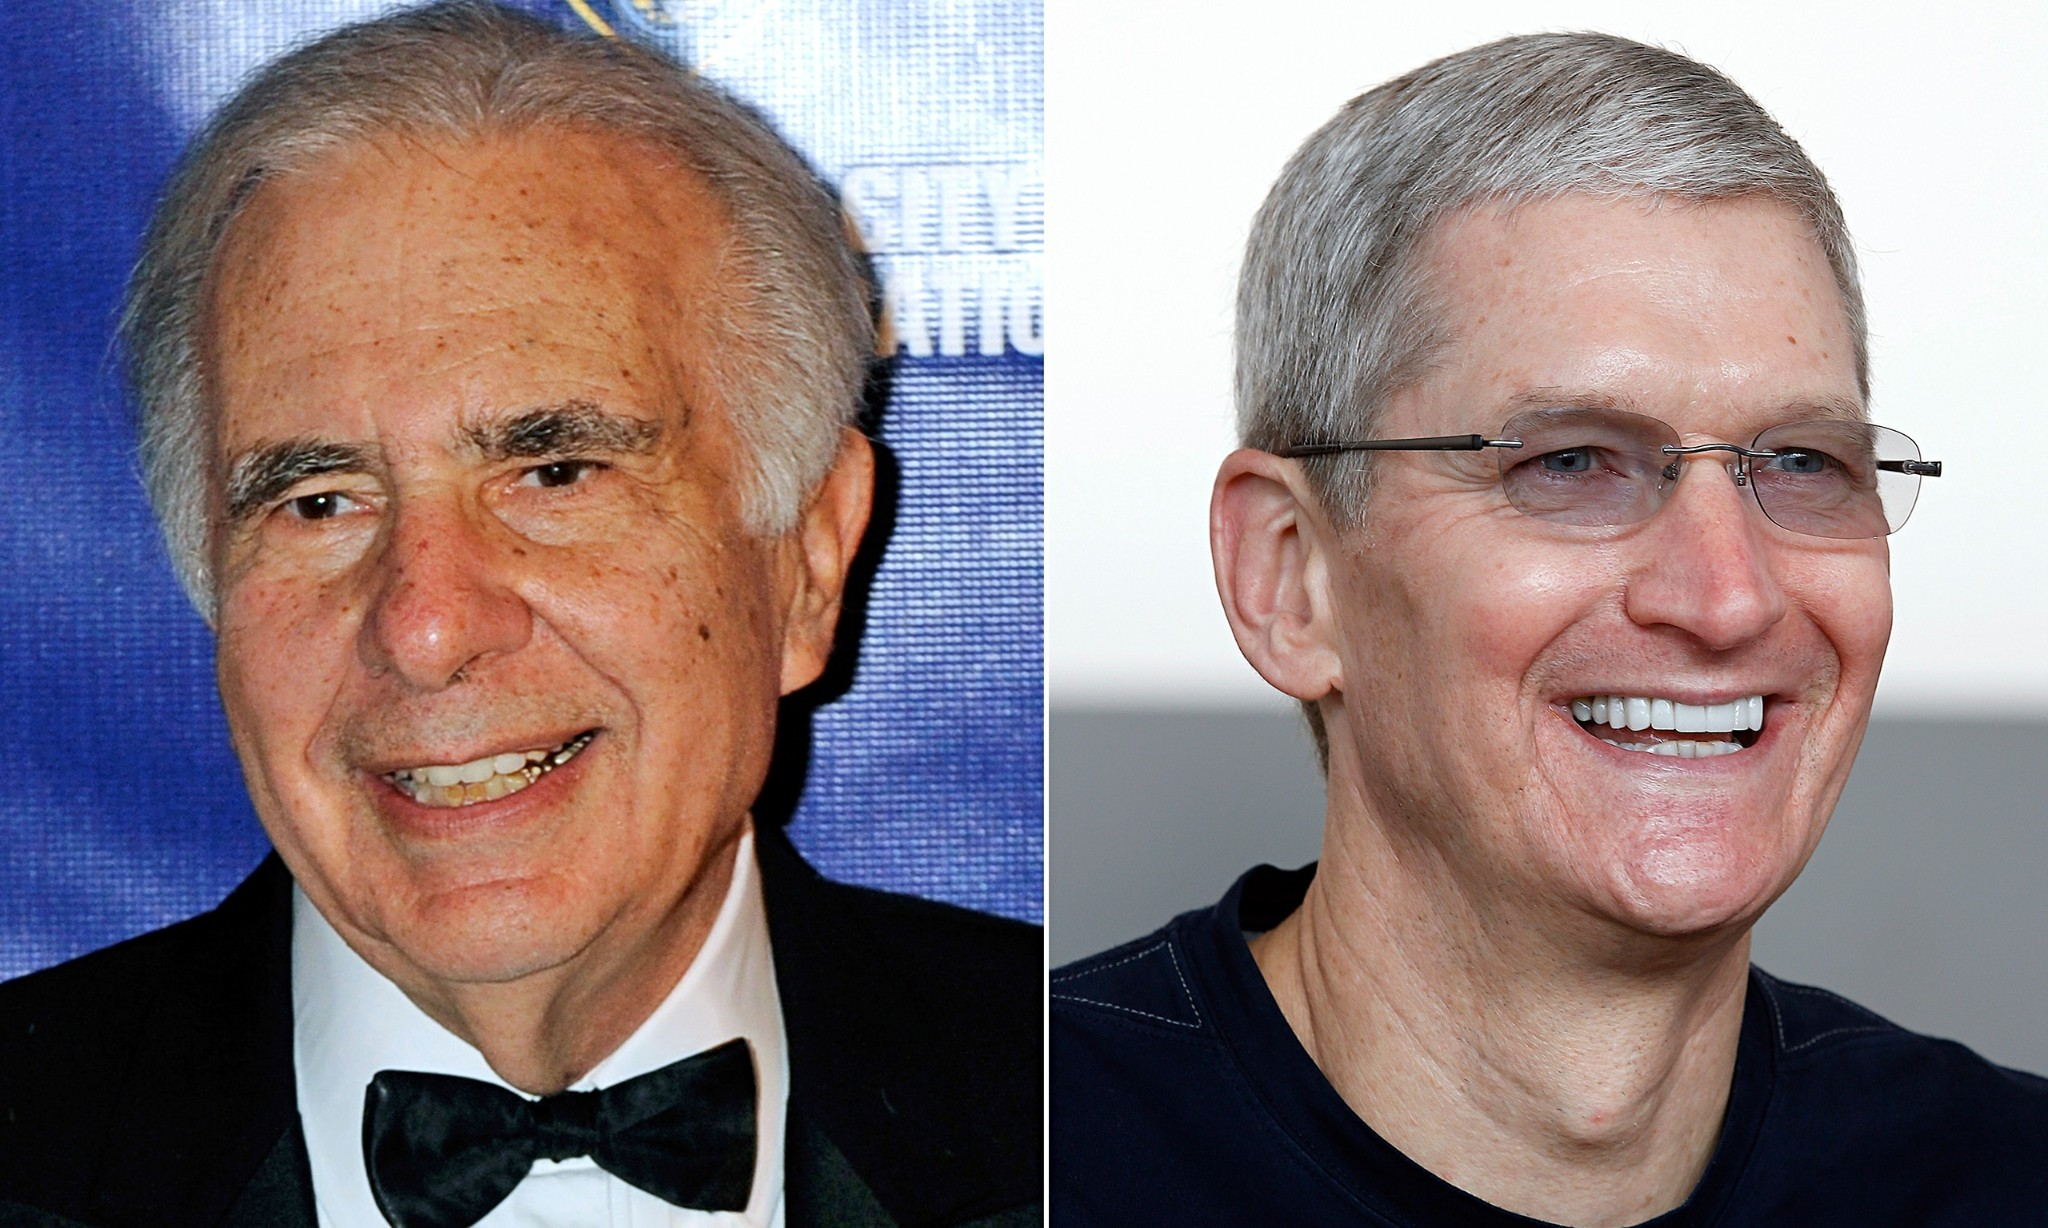 Carl Icahn predicts Apple share price will more than double